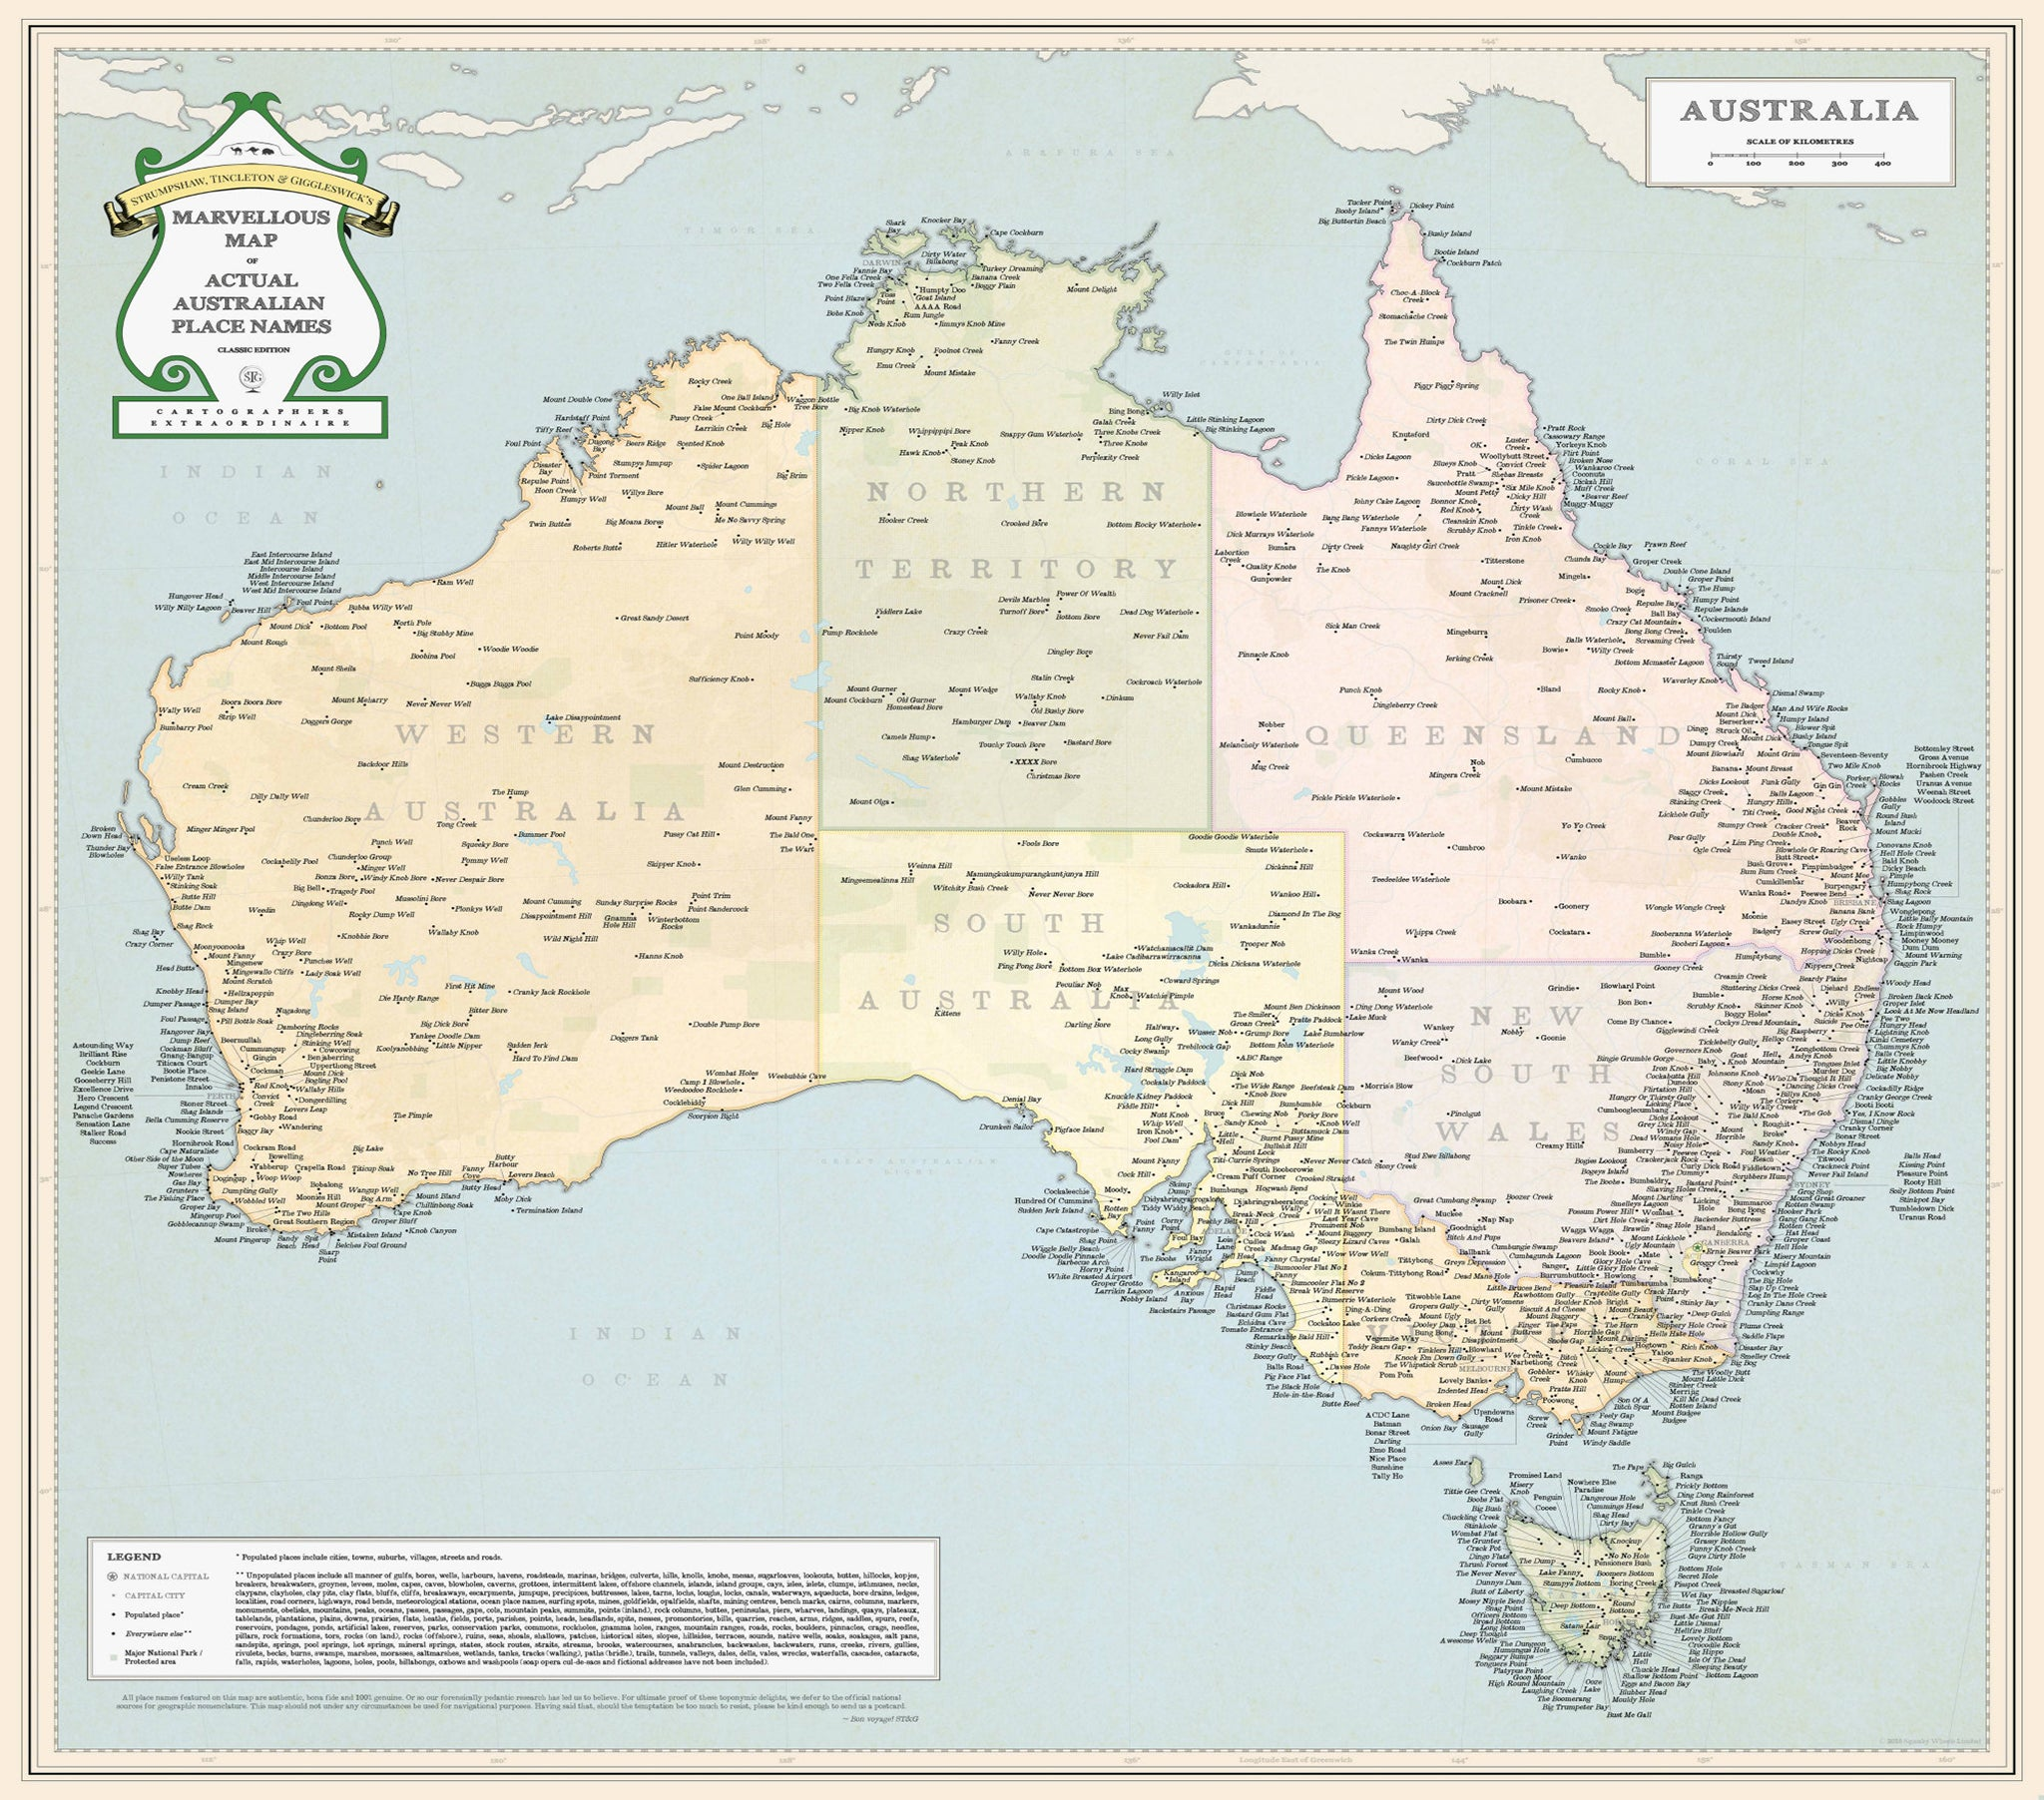 marvellous map of actual australian place names 660 x 660mm paper